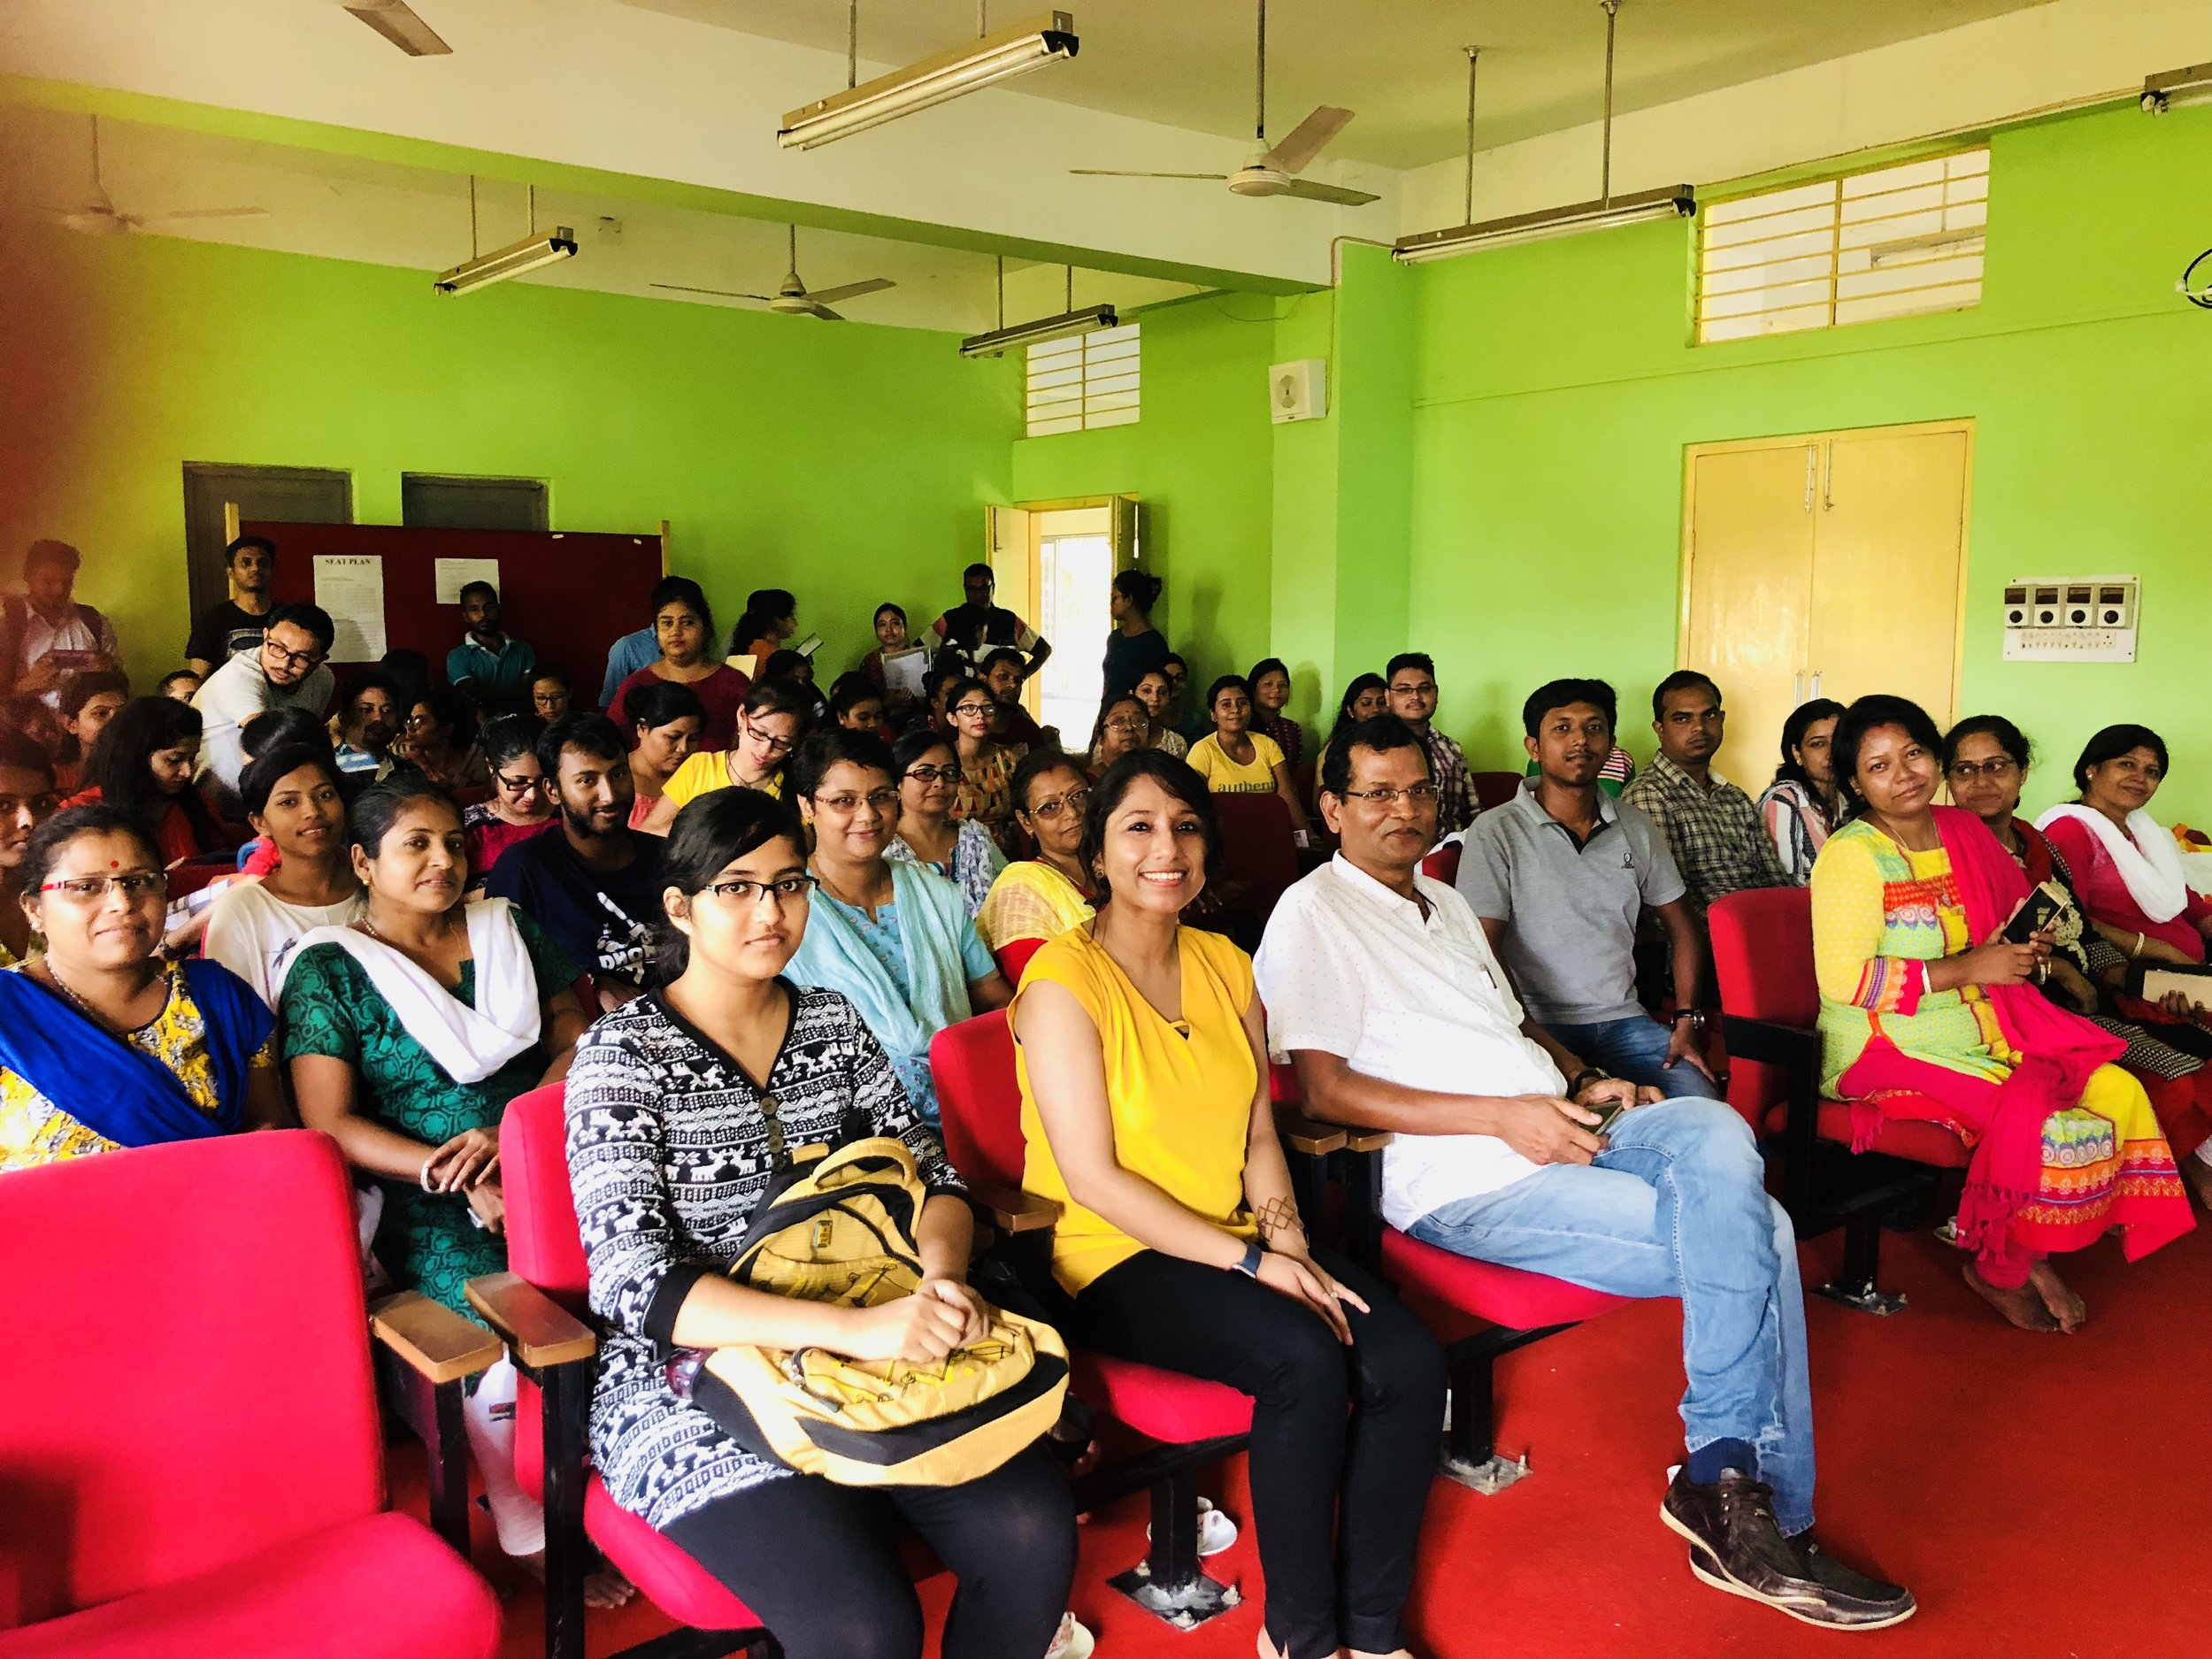 I am sincerely thankful to Dr. Anirudha Giri, Professor, Dept. of Life Science and all the other Faculties, Students and Staffs from AU for joining the event & believing in the cause. I was so delighted to see my Professor from G. C College, Dr. Mitra Dey, who is now Professor at Department of Ecology and Environmental Science, Assam University, attending the session